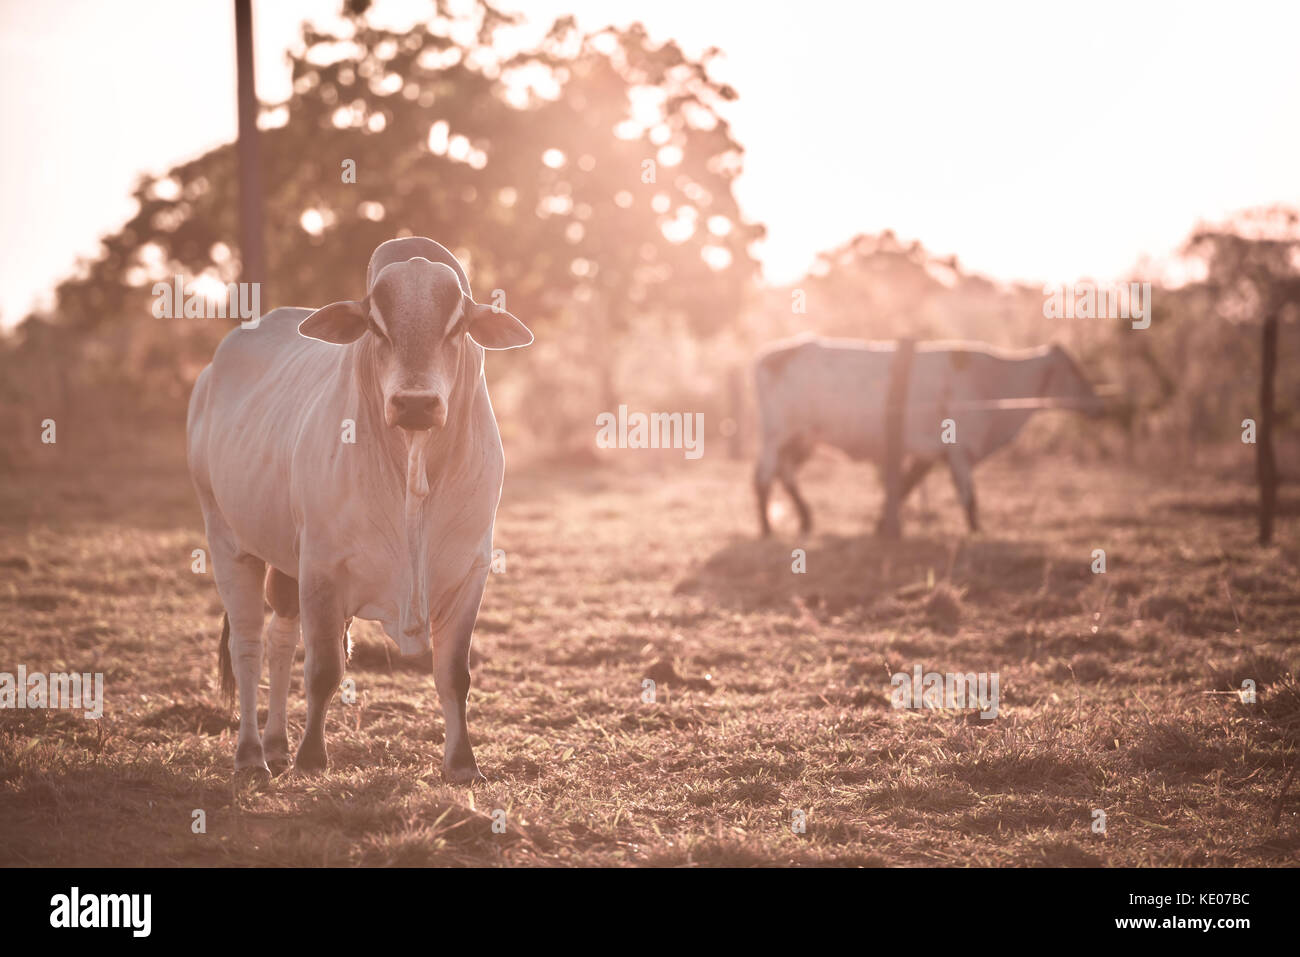 Breeding cattle outdoors with the sunset in the background. - Stock Image